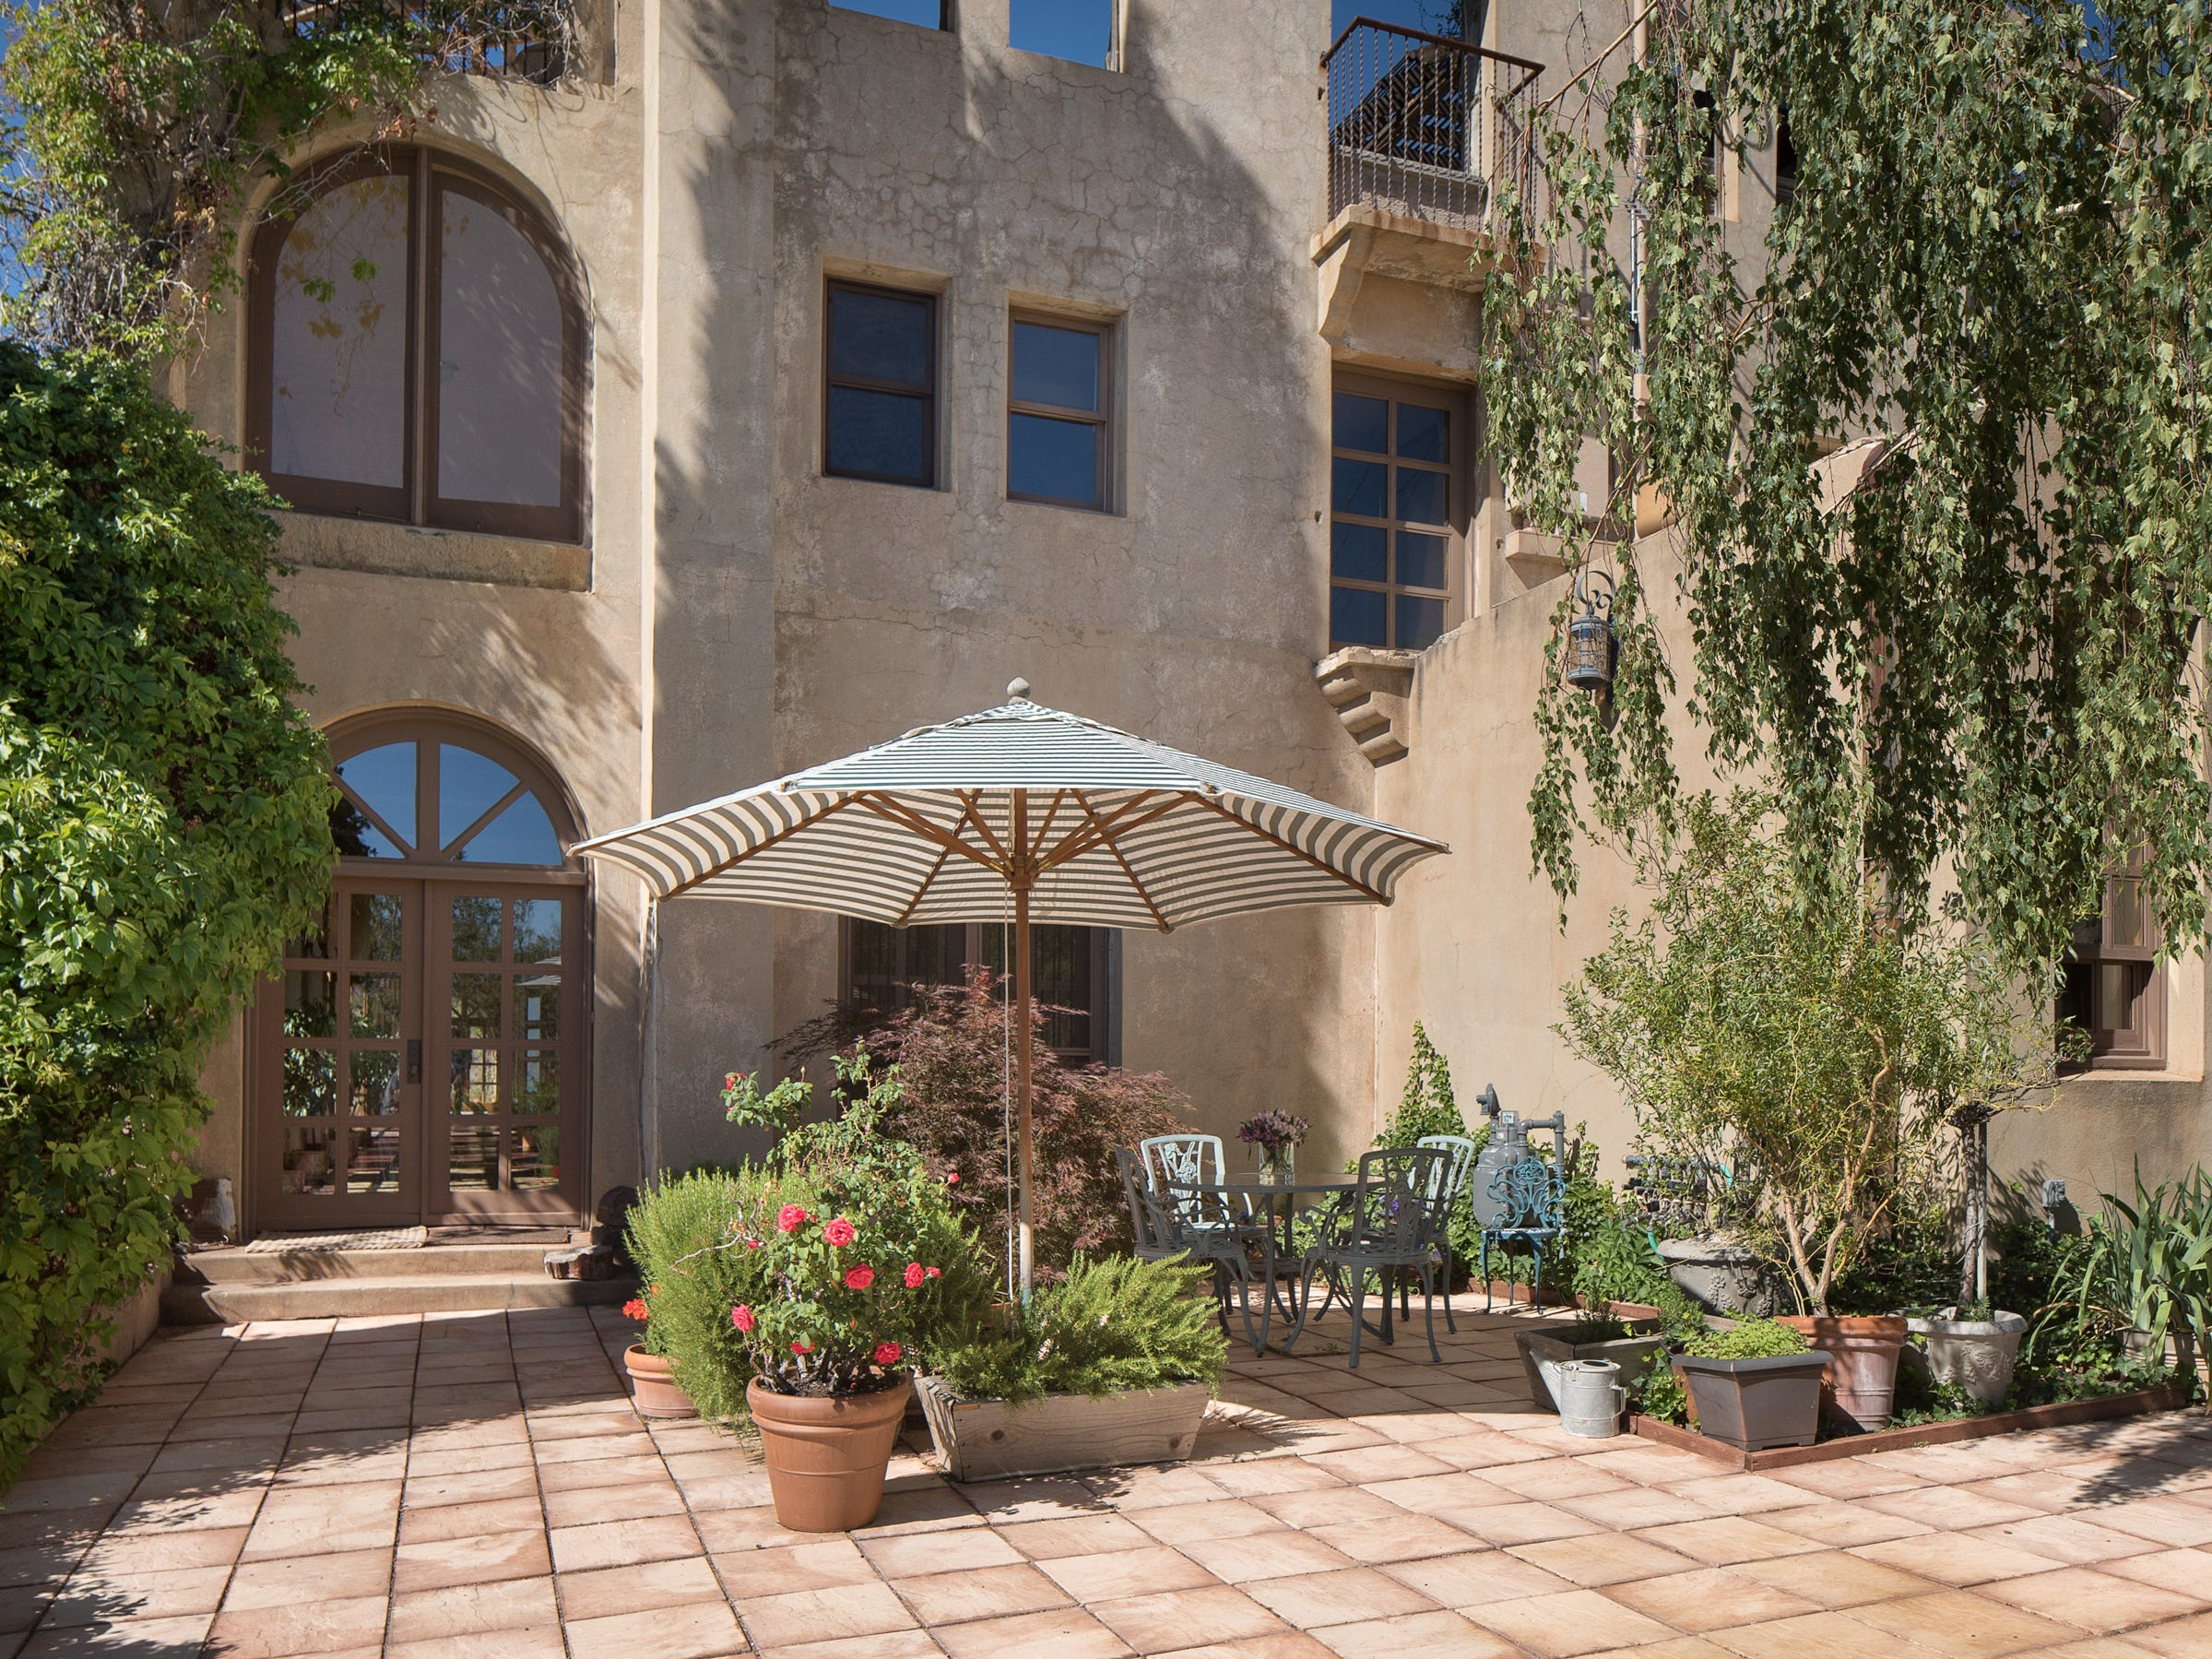 The patio off the dining kitchen is seen in the 100-year-old former Little Daisy Hotel in Jerome, which was later turned into a single-family home and is now on the market.